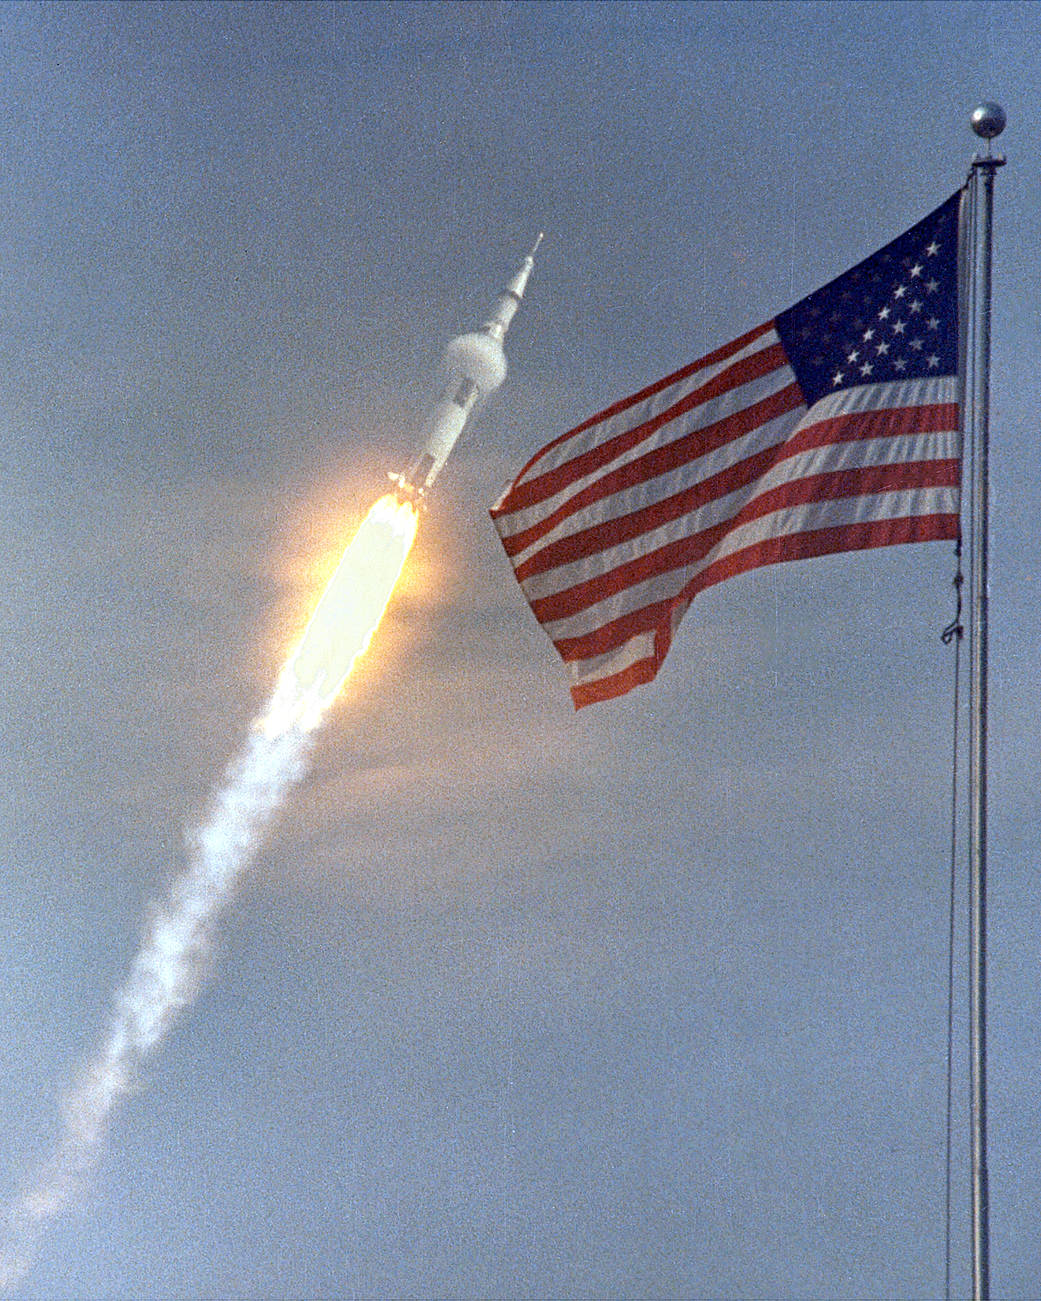 Caption from NASA: The American flag heralded the launch of Apollo 11, the first Lunar landing mission, on July 16, 1969. The massive Saturn V rocket lifted off from NASA's Kennedy Space Center with astronauts Neil A. Armstrong, Michael Collins, and Edwin